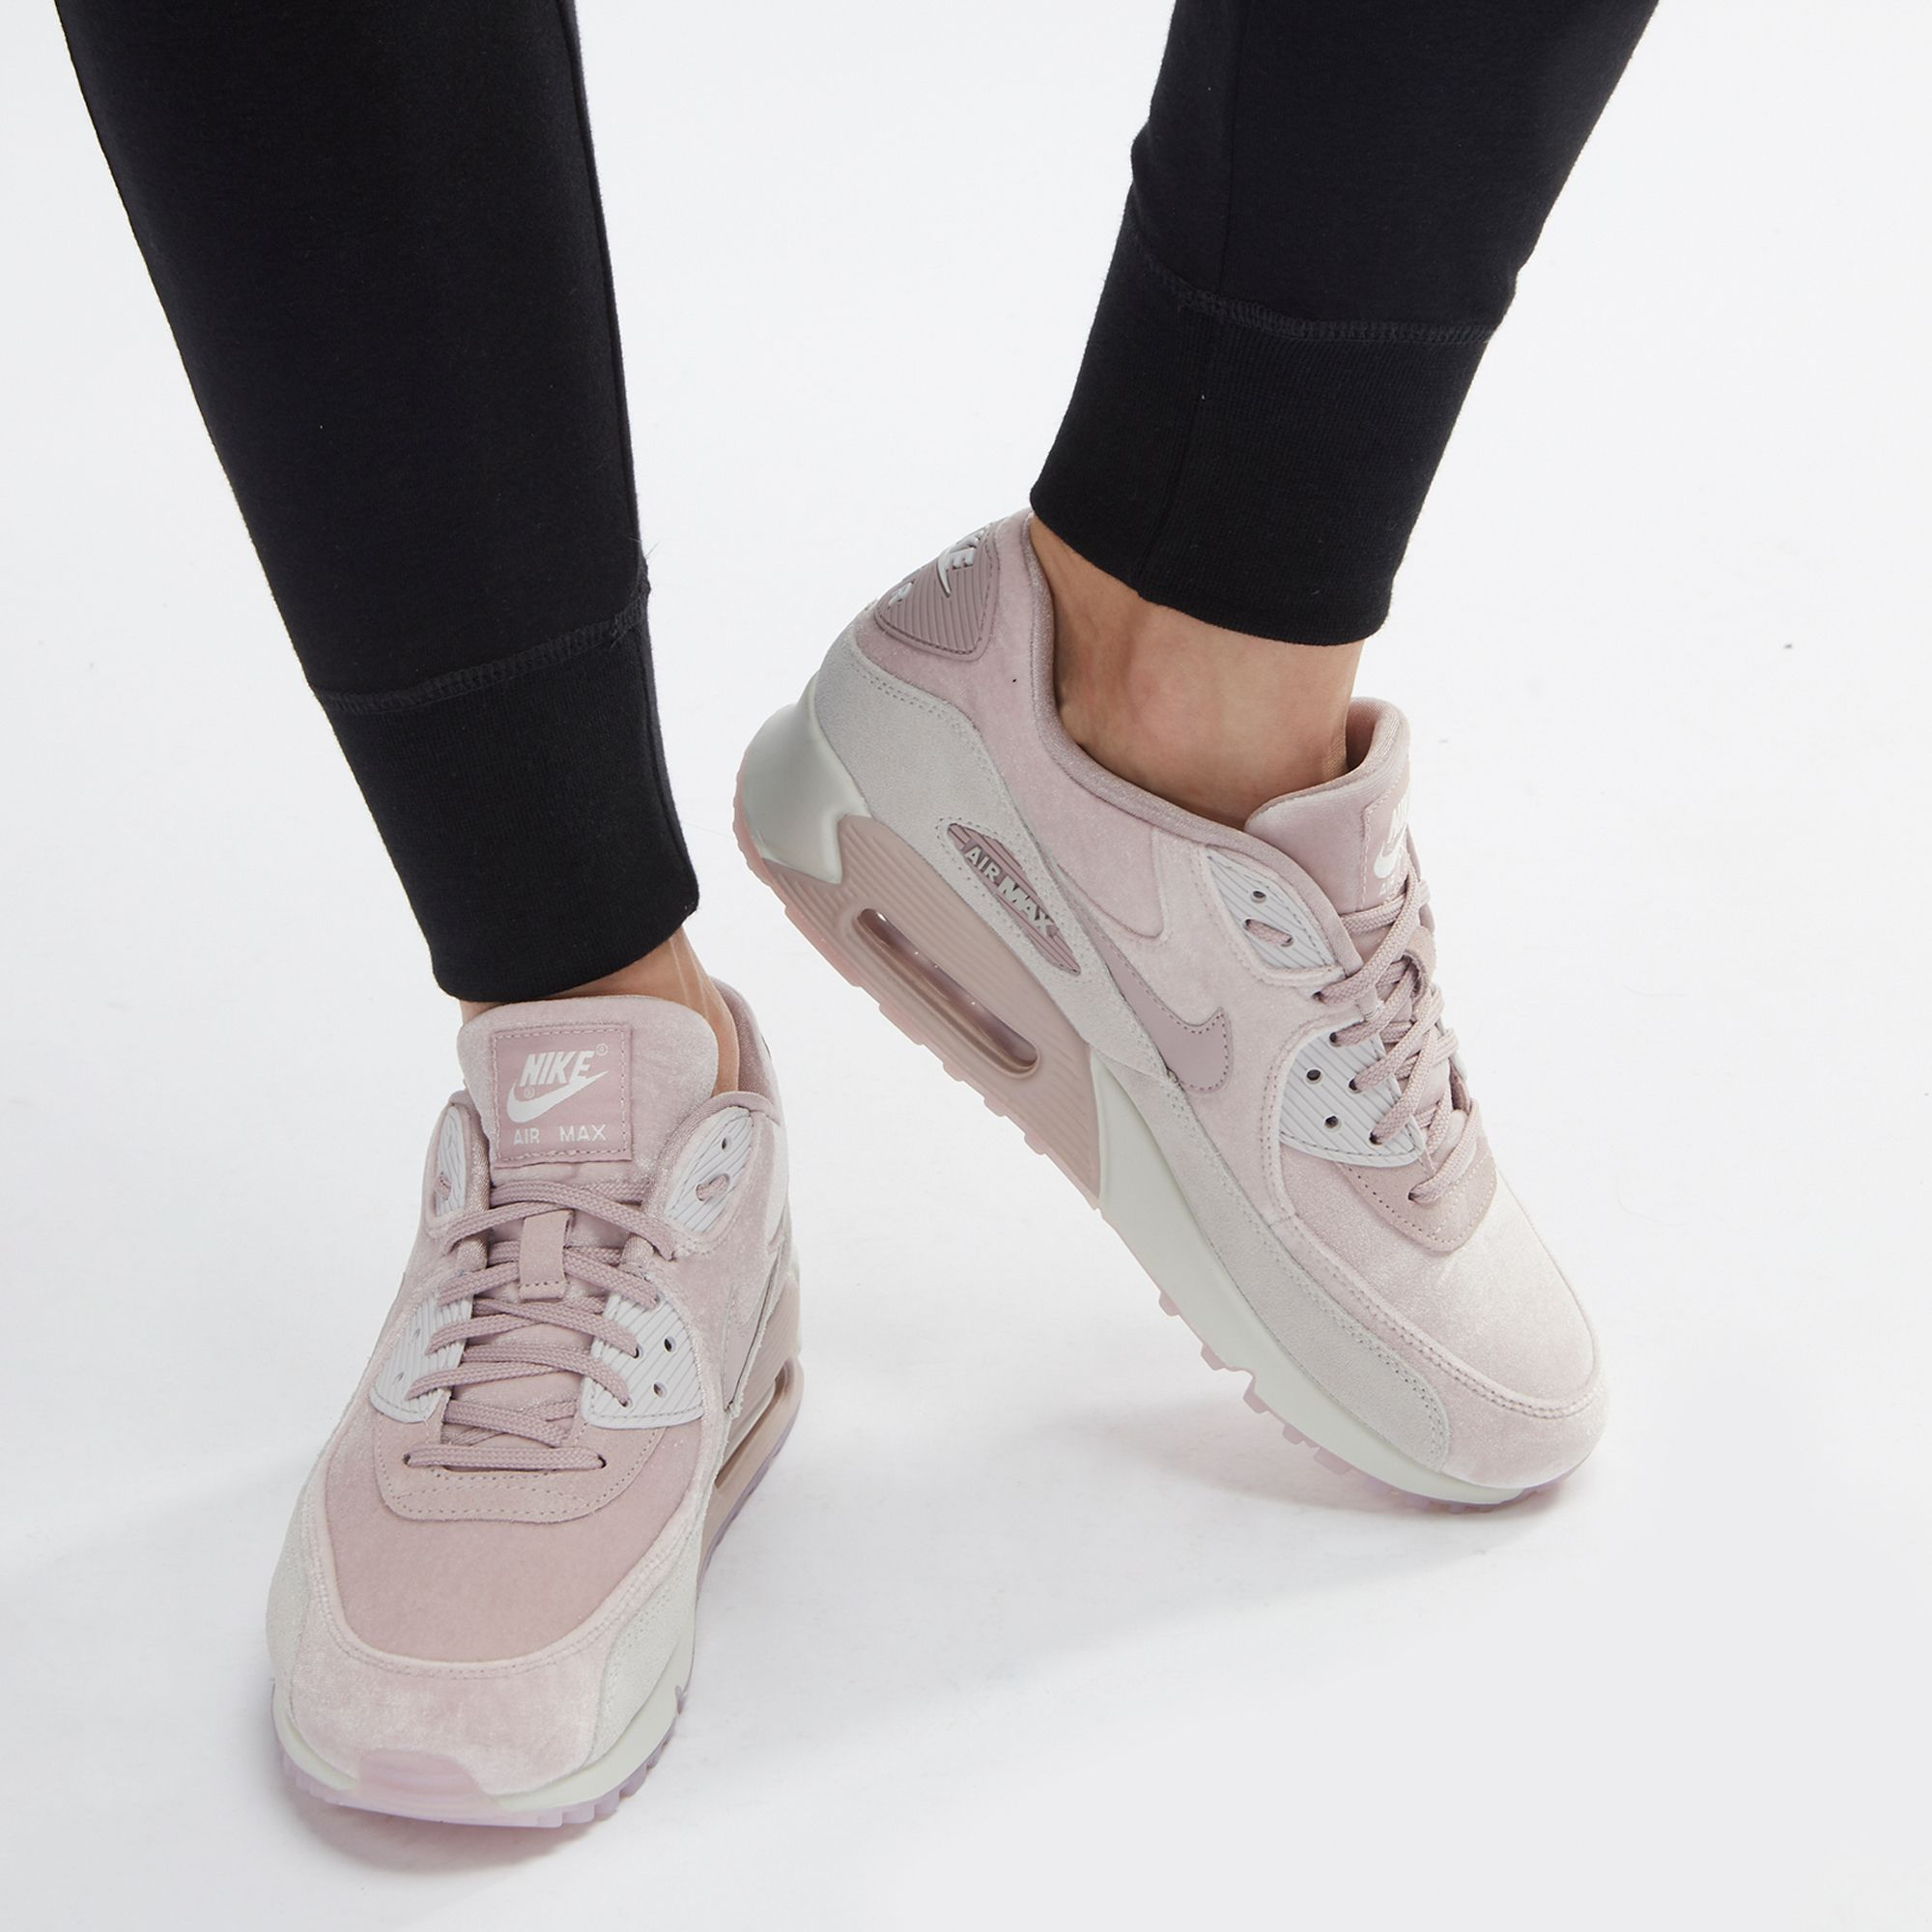 outlet store 99053 f8ed3 Nike Air Max 90 LX Velvet Shoe | Sneakers | Shoes | Women's ...